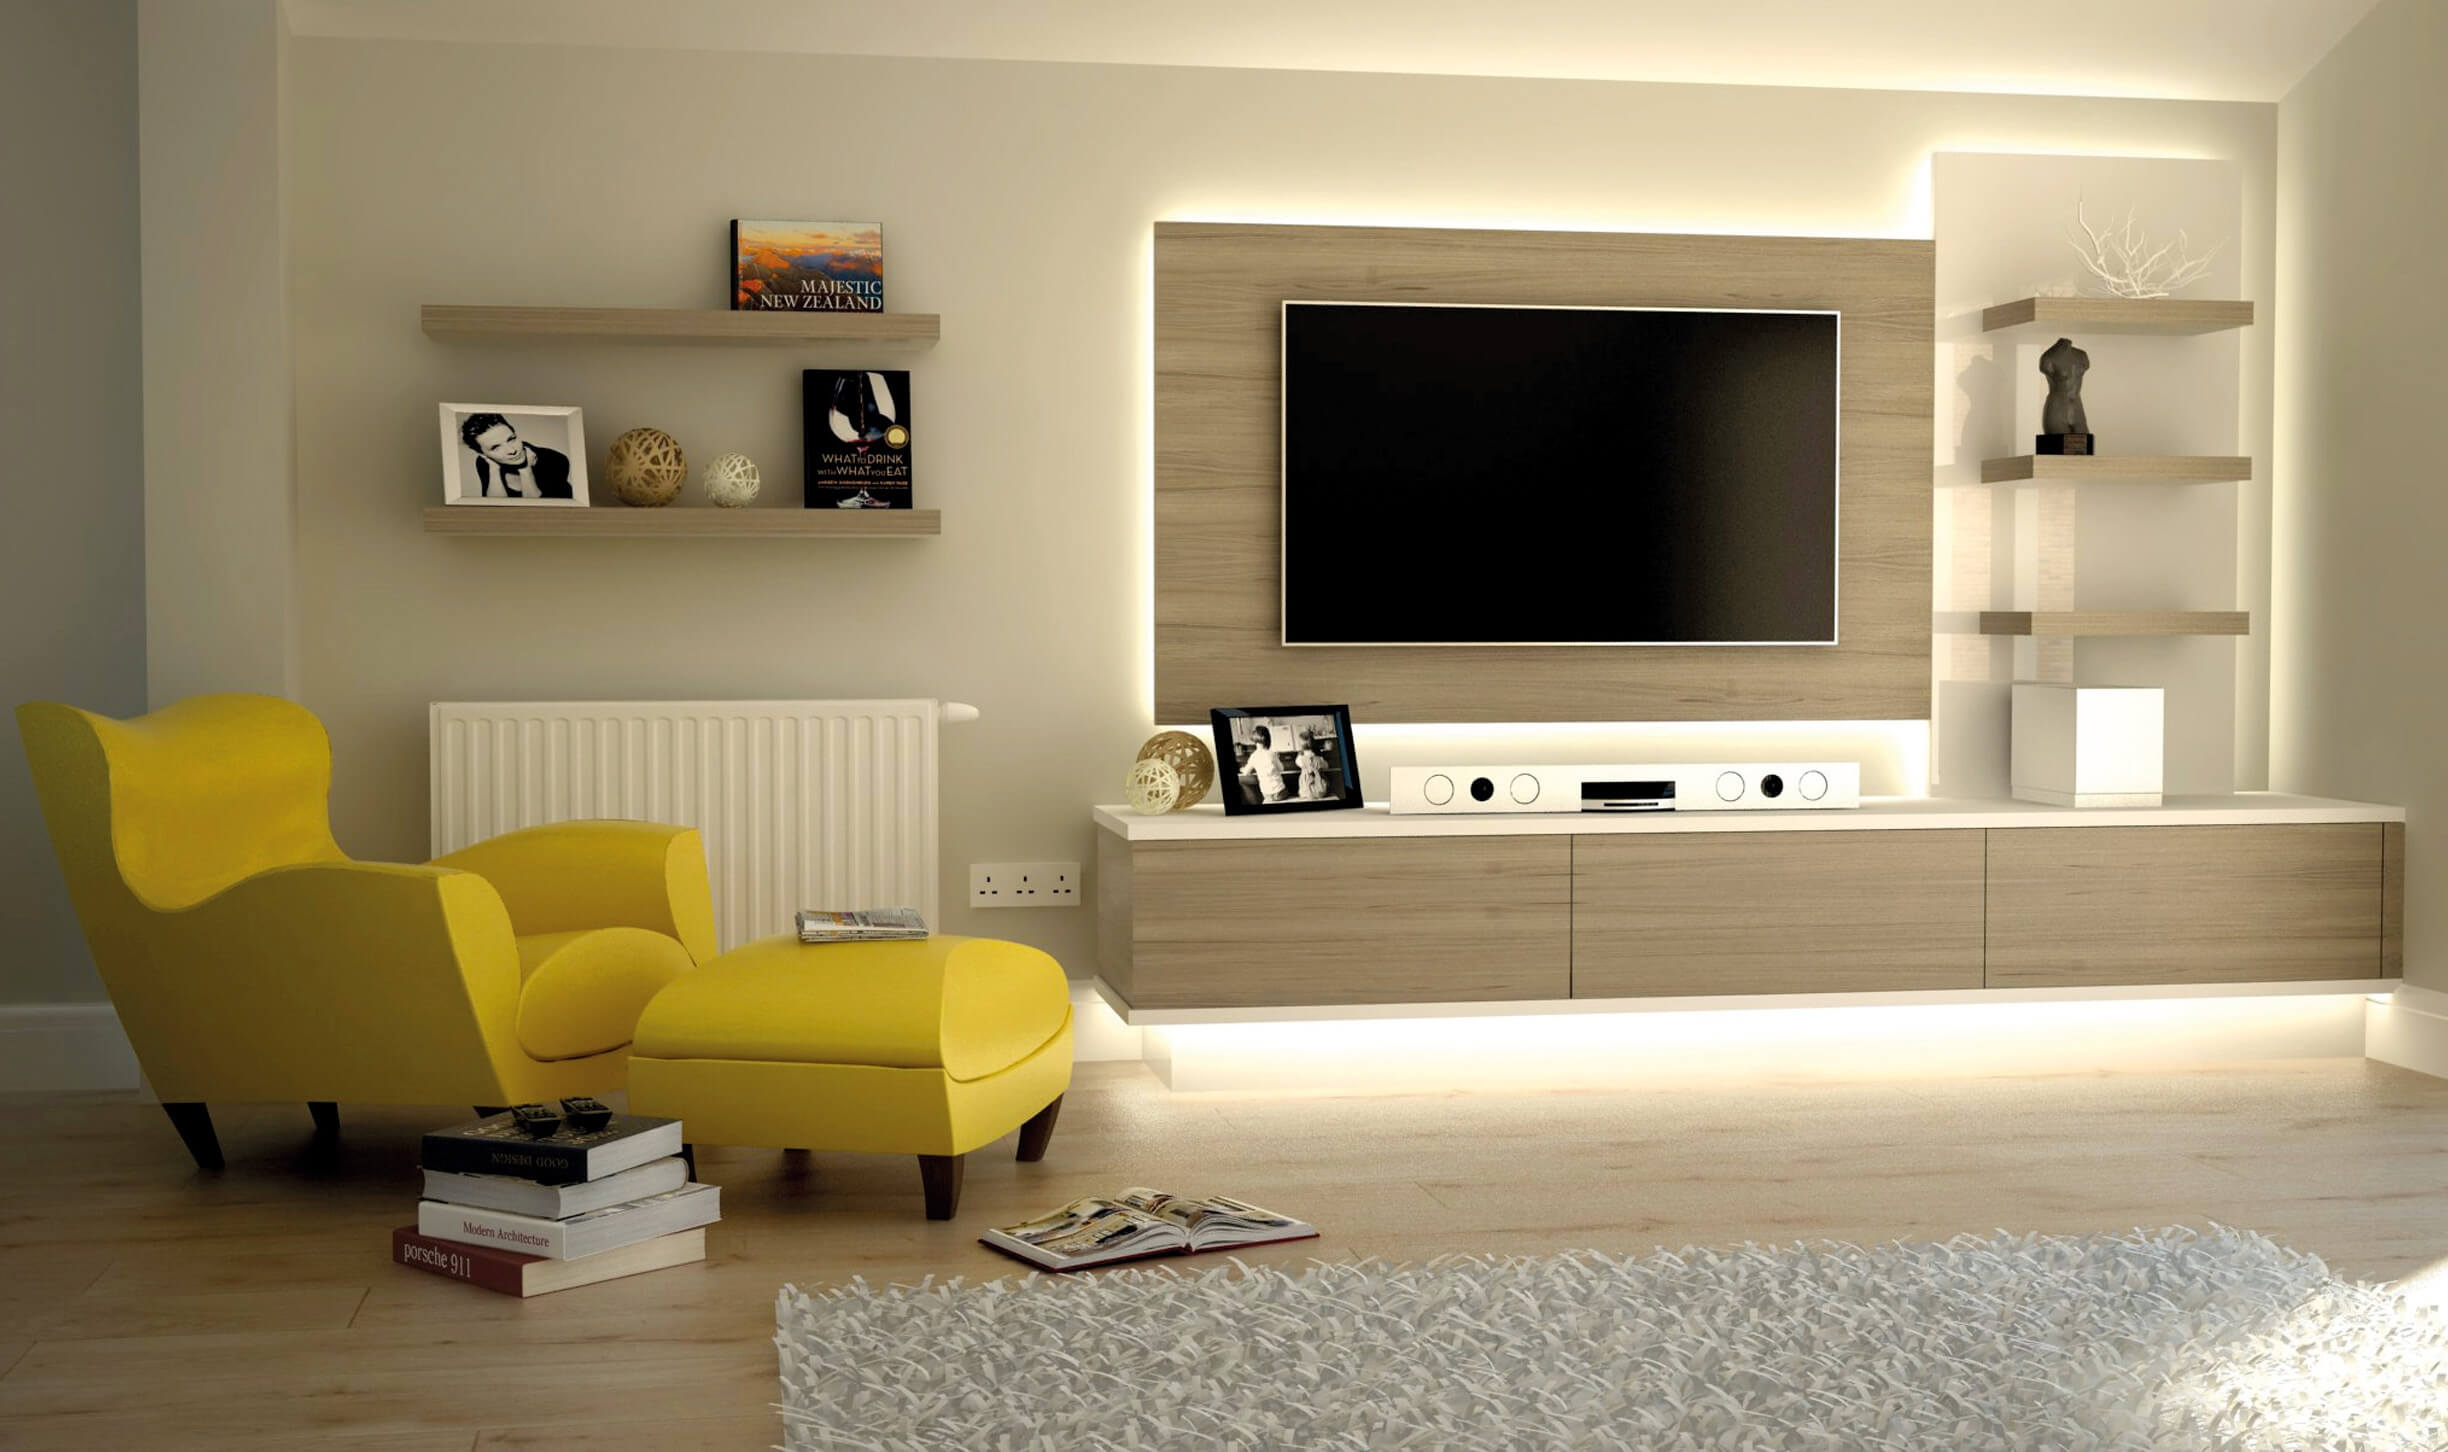 Bespoke Tv Cabinets Bookcases And Storage Units For Over 50 With Regard To Fitted Living Room Cabinets (#2 of 15)